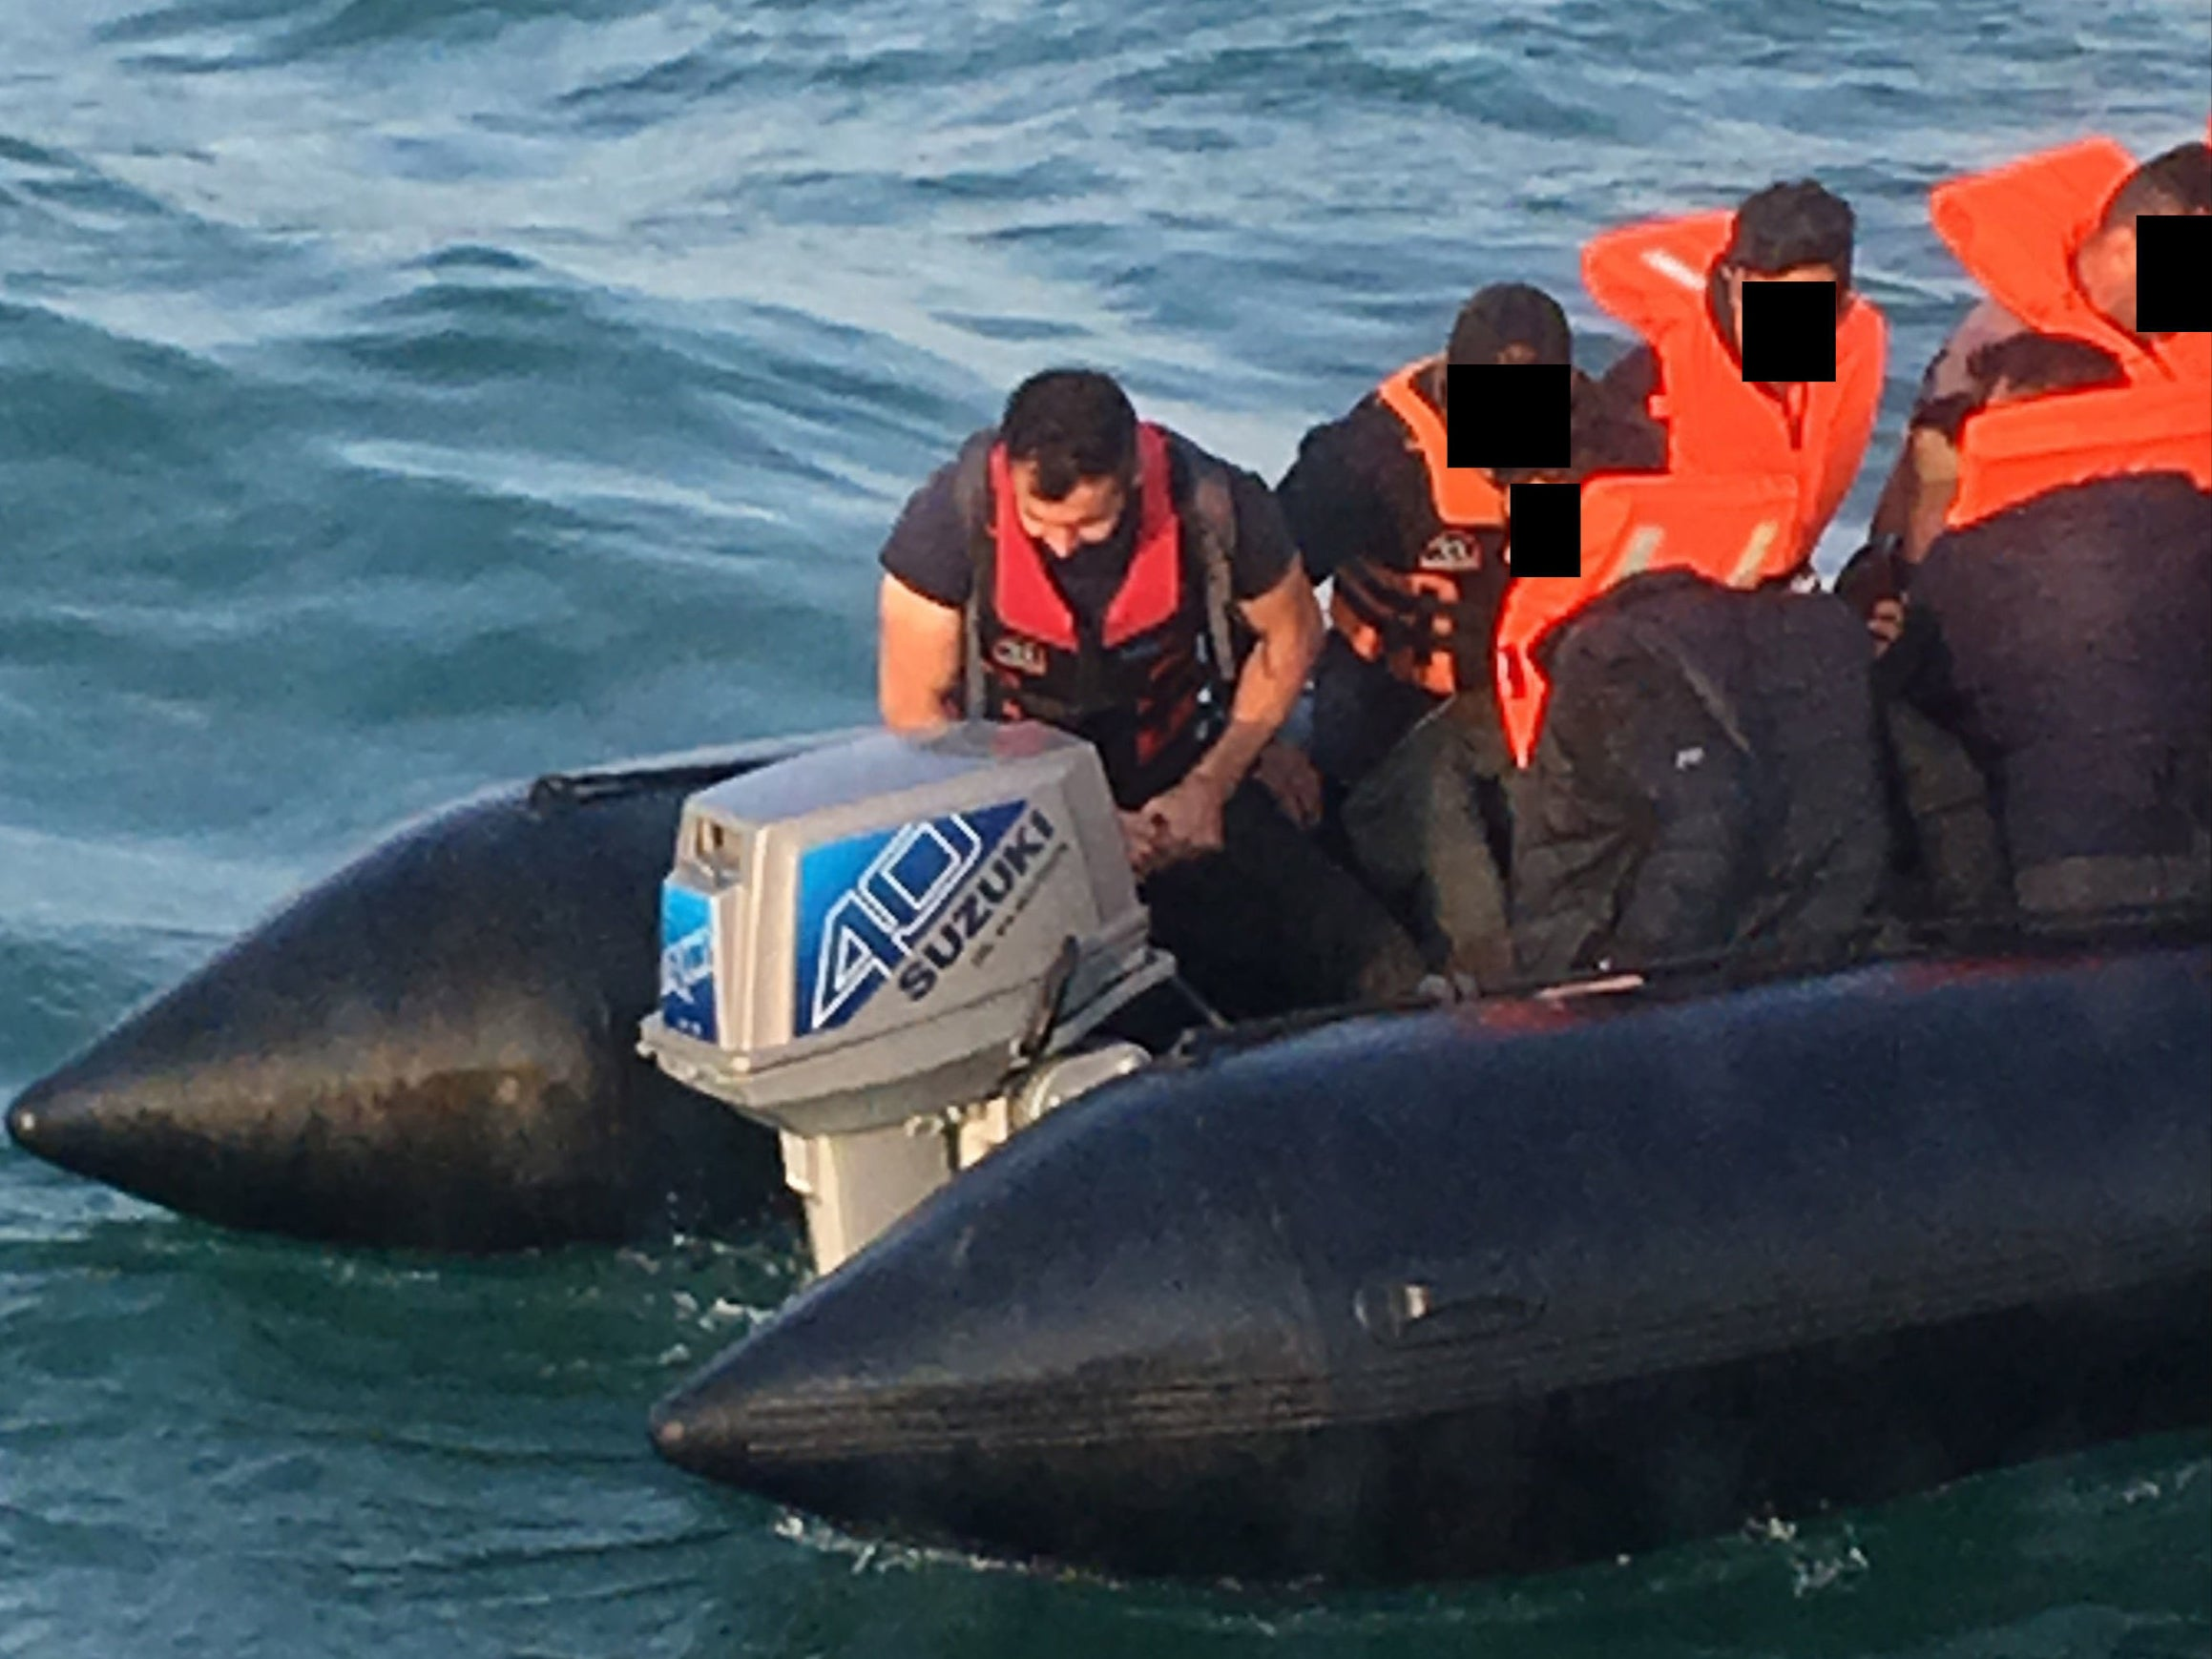 Iranian refugee jailed after being spotted steering two dinghies across English Channel